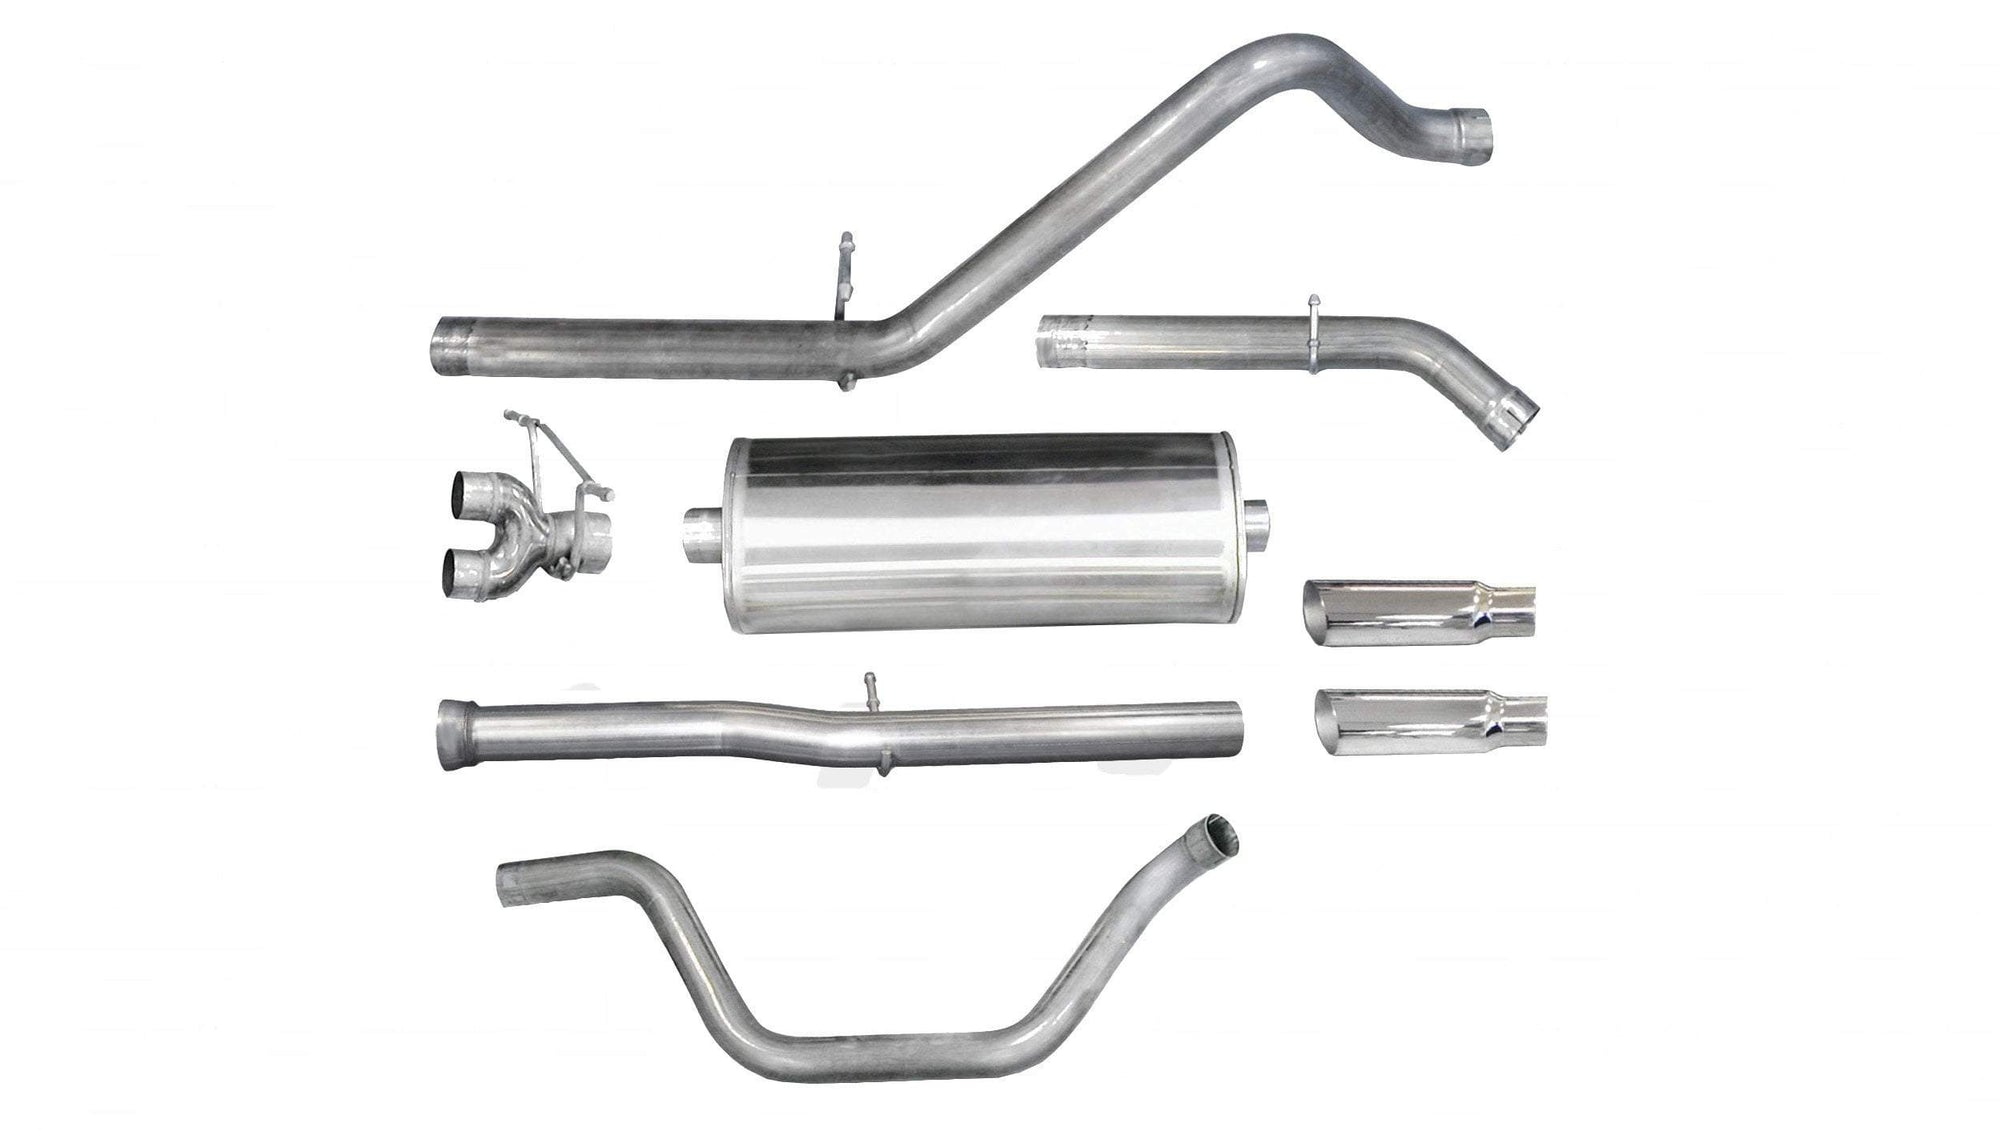 "dB Cat-Back Exhaust Polished / Sport / Dual Rear - Single 4in 2011-2013 Chevrolet Silverado, GMC Sierra, Denali, 6.2L V8, 3.0"" Dual Rear Exit Catback Exhaust System with 4.0"" Tips (24524) Sport Sound Levl"